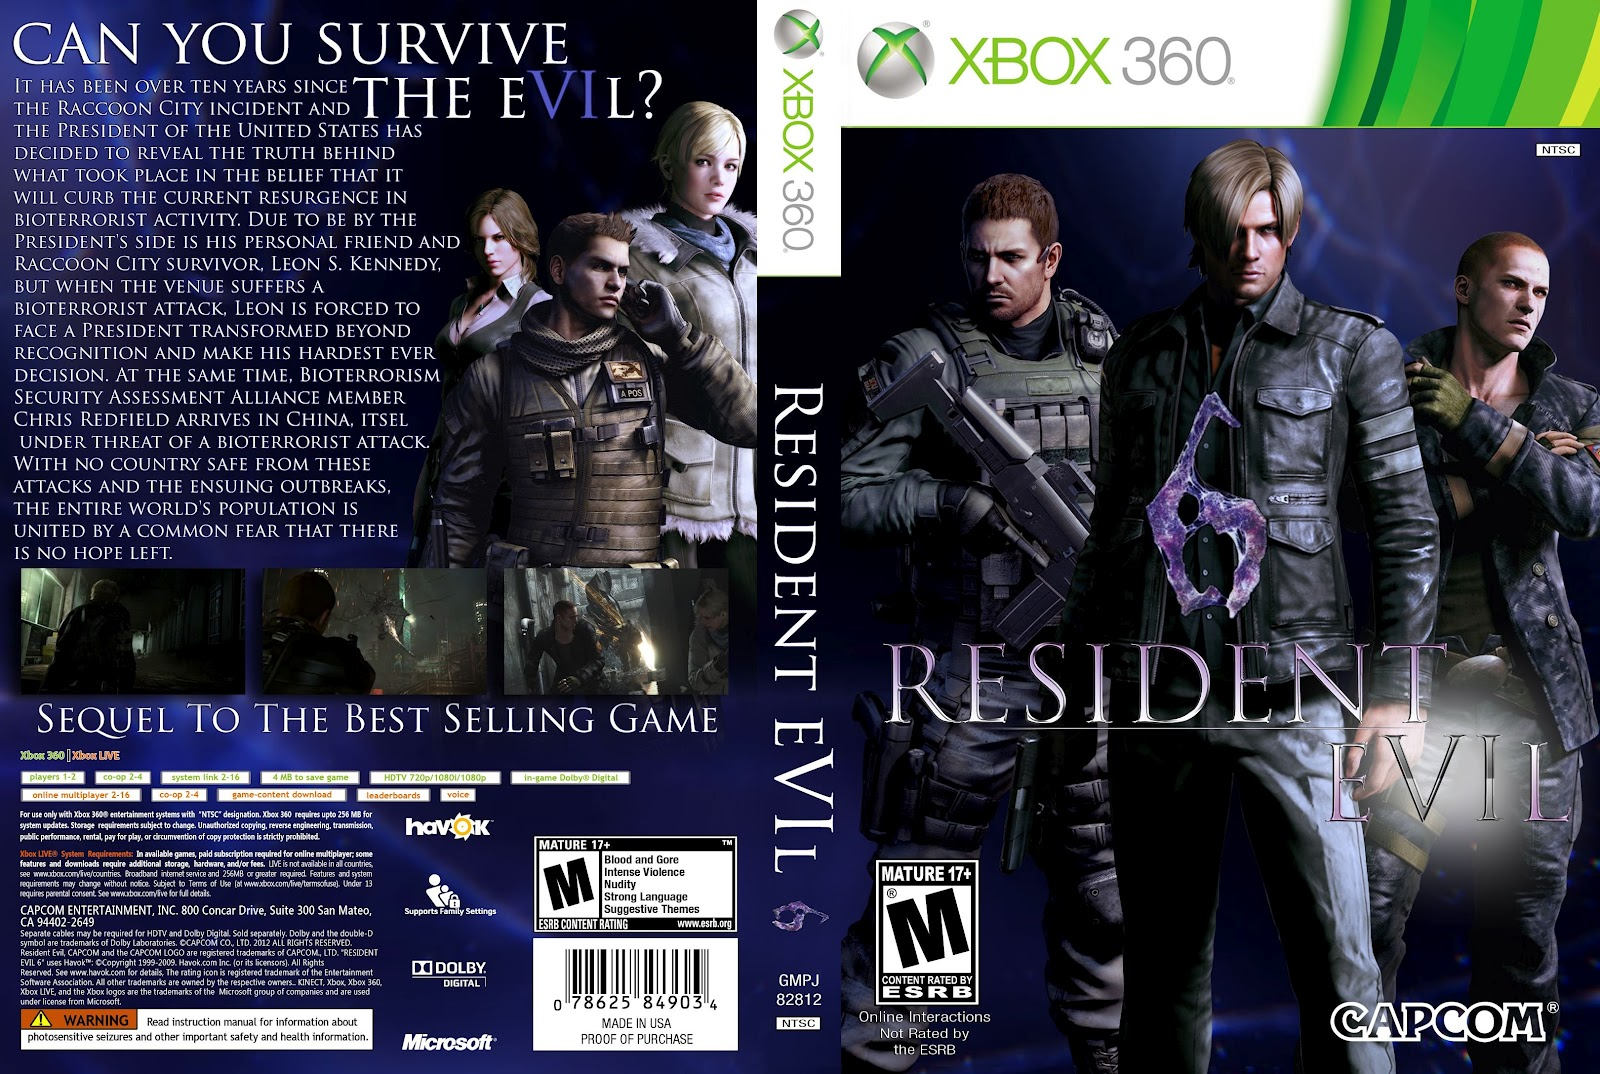 Resident evil 6 demo release for xbox 360 : Date of birth of tamil